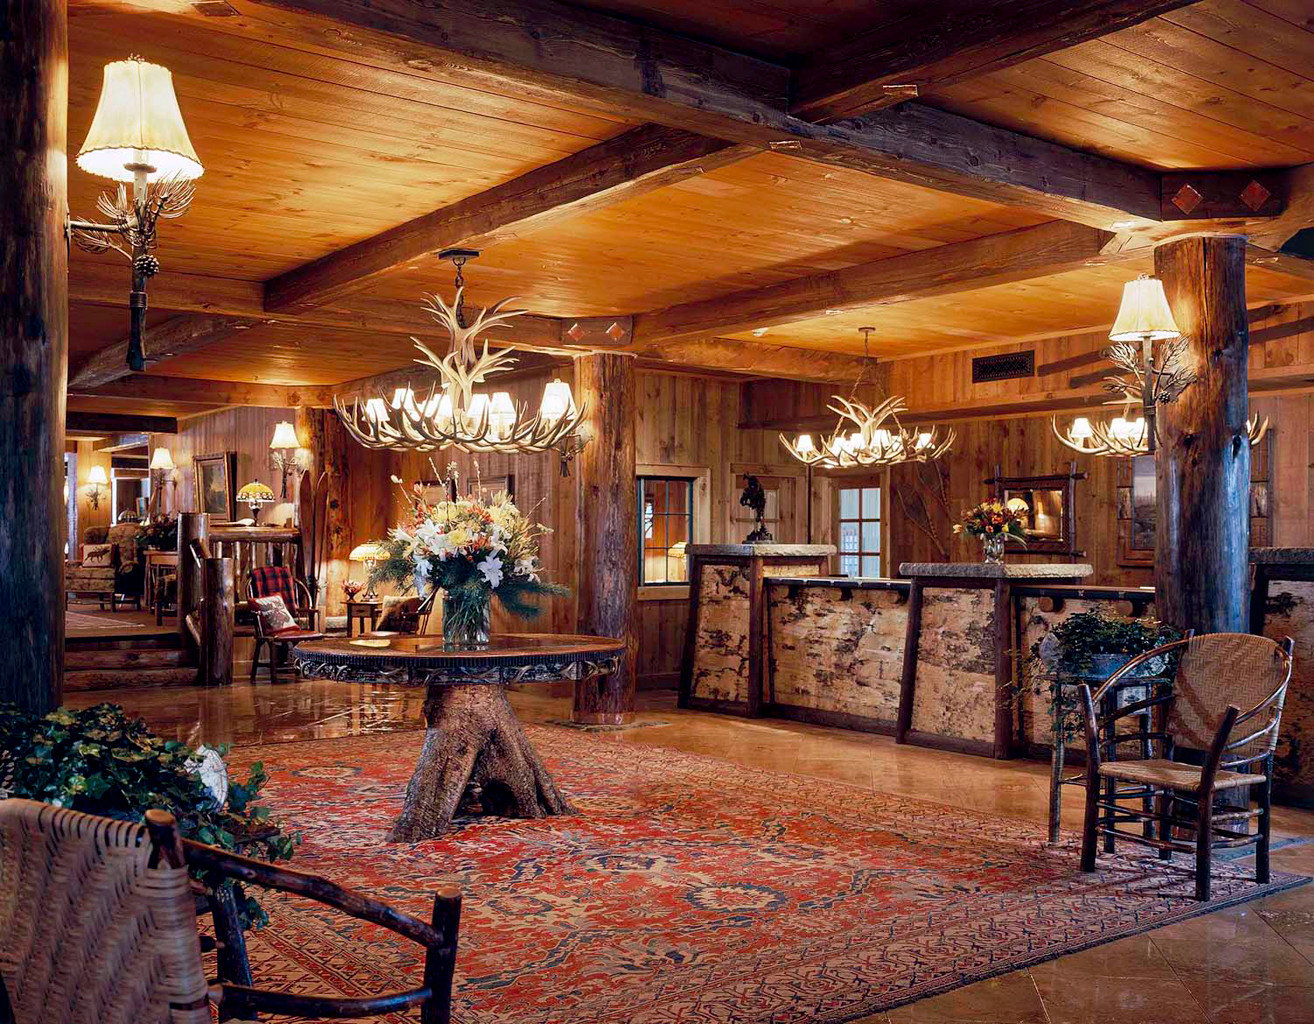 Lodge Lounge Luxury Romantic Rustic Trip Ideas home Lobby log cabin restaurant living room